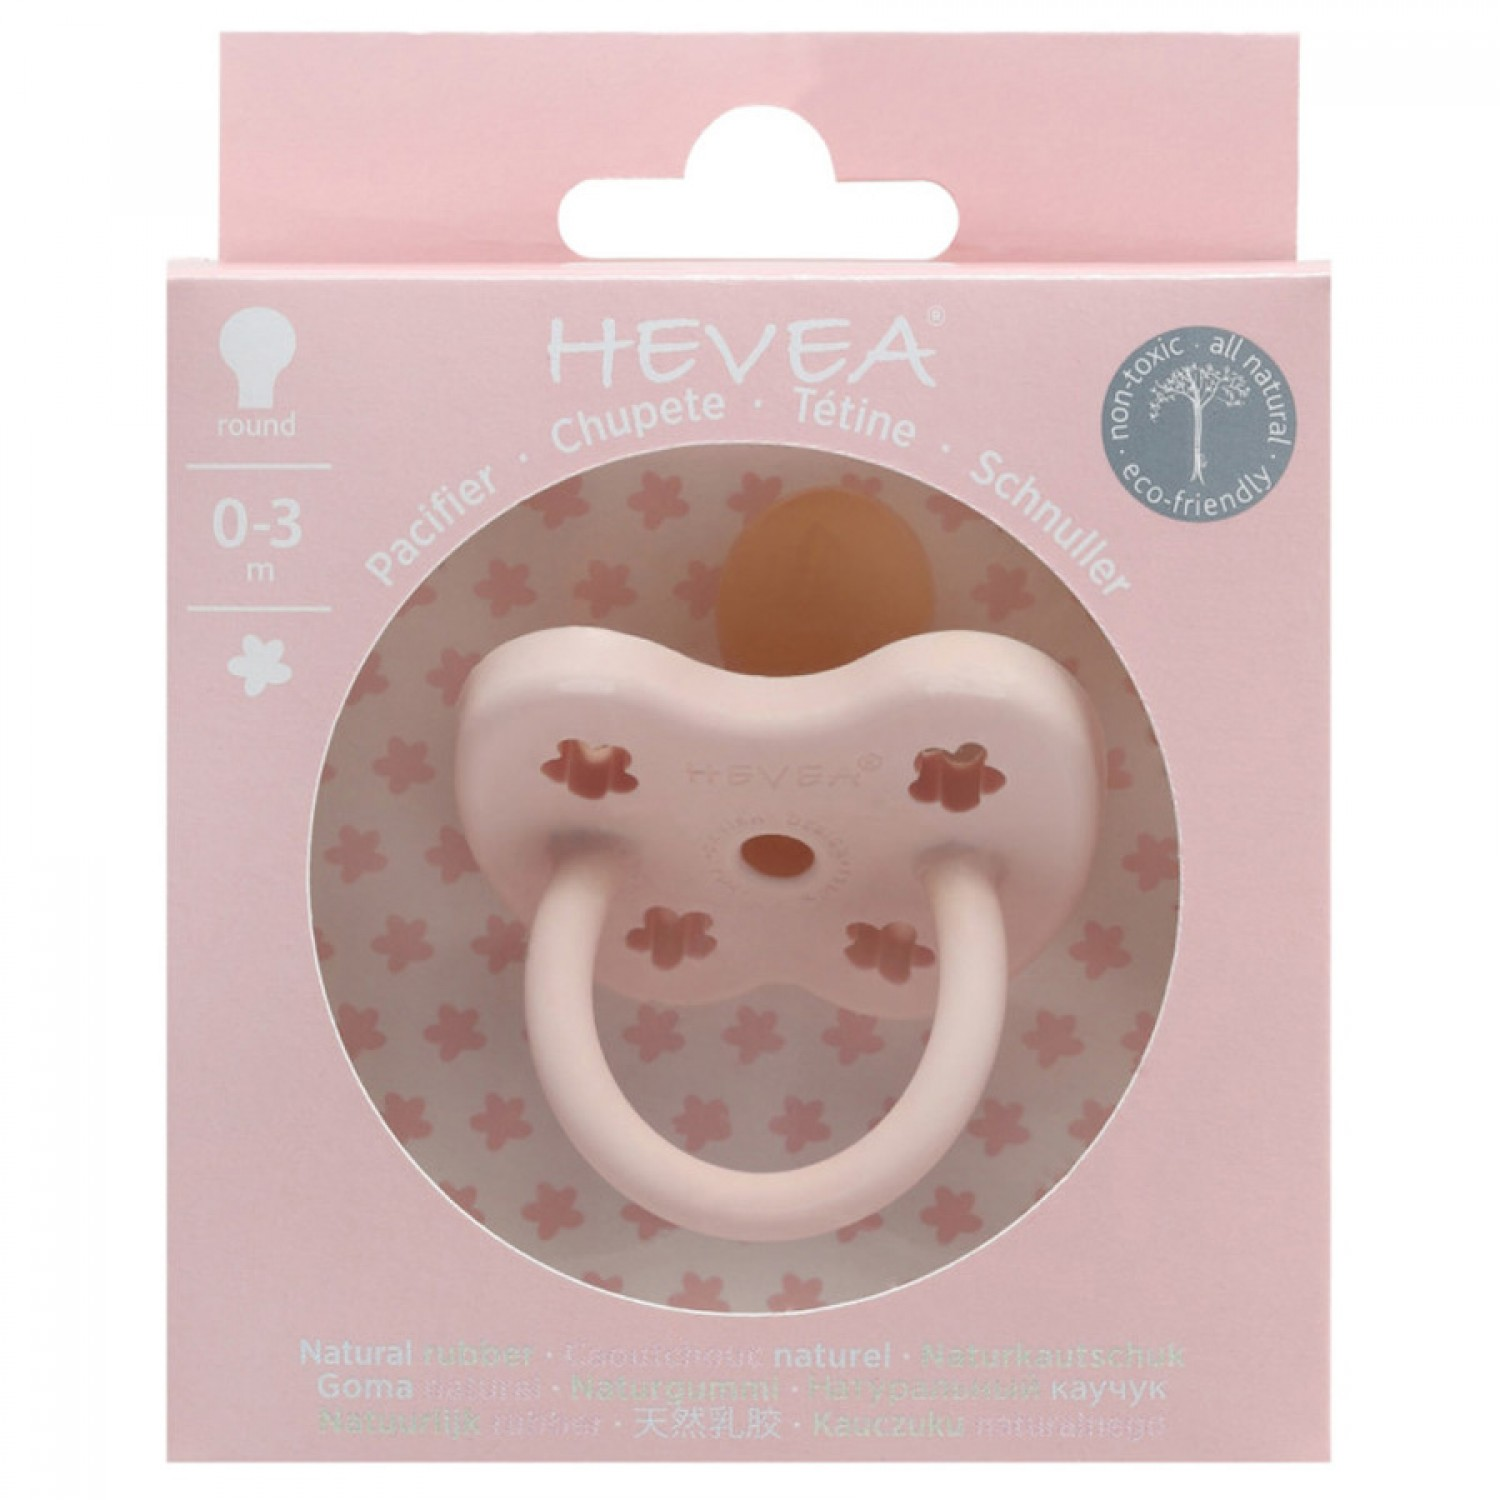 HEVEA Orhodontic Pacifier | Powder Pink 0-3 Months